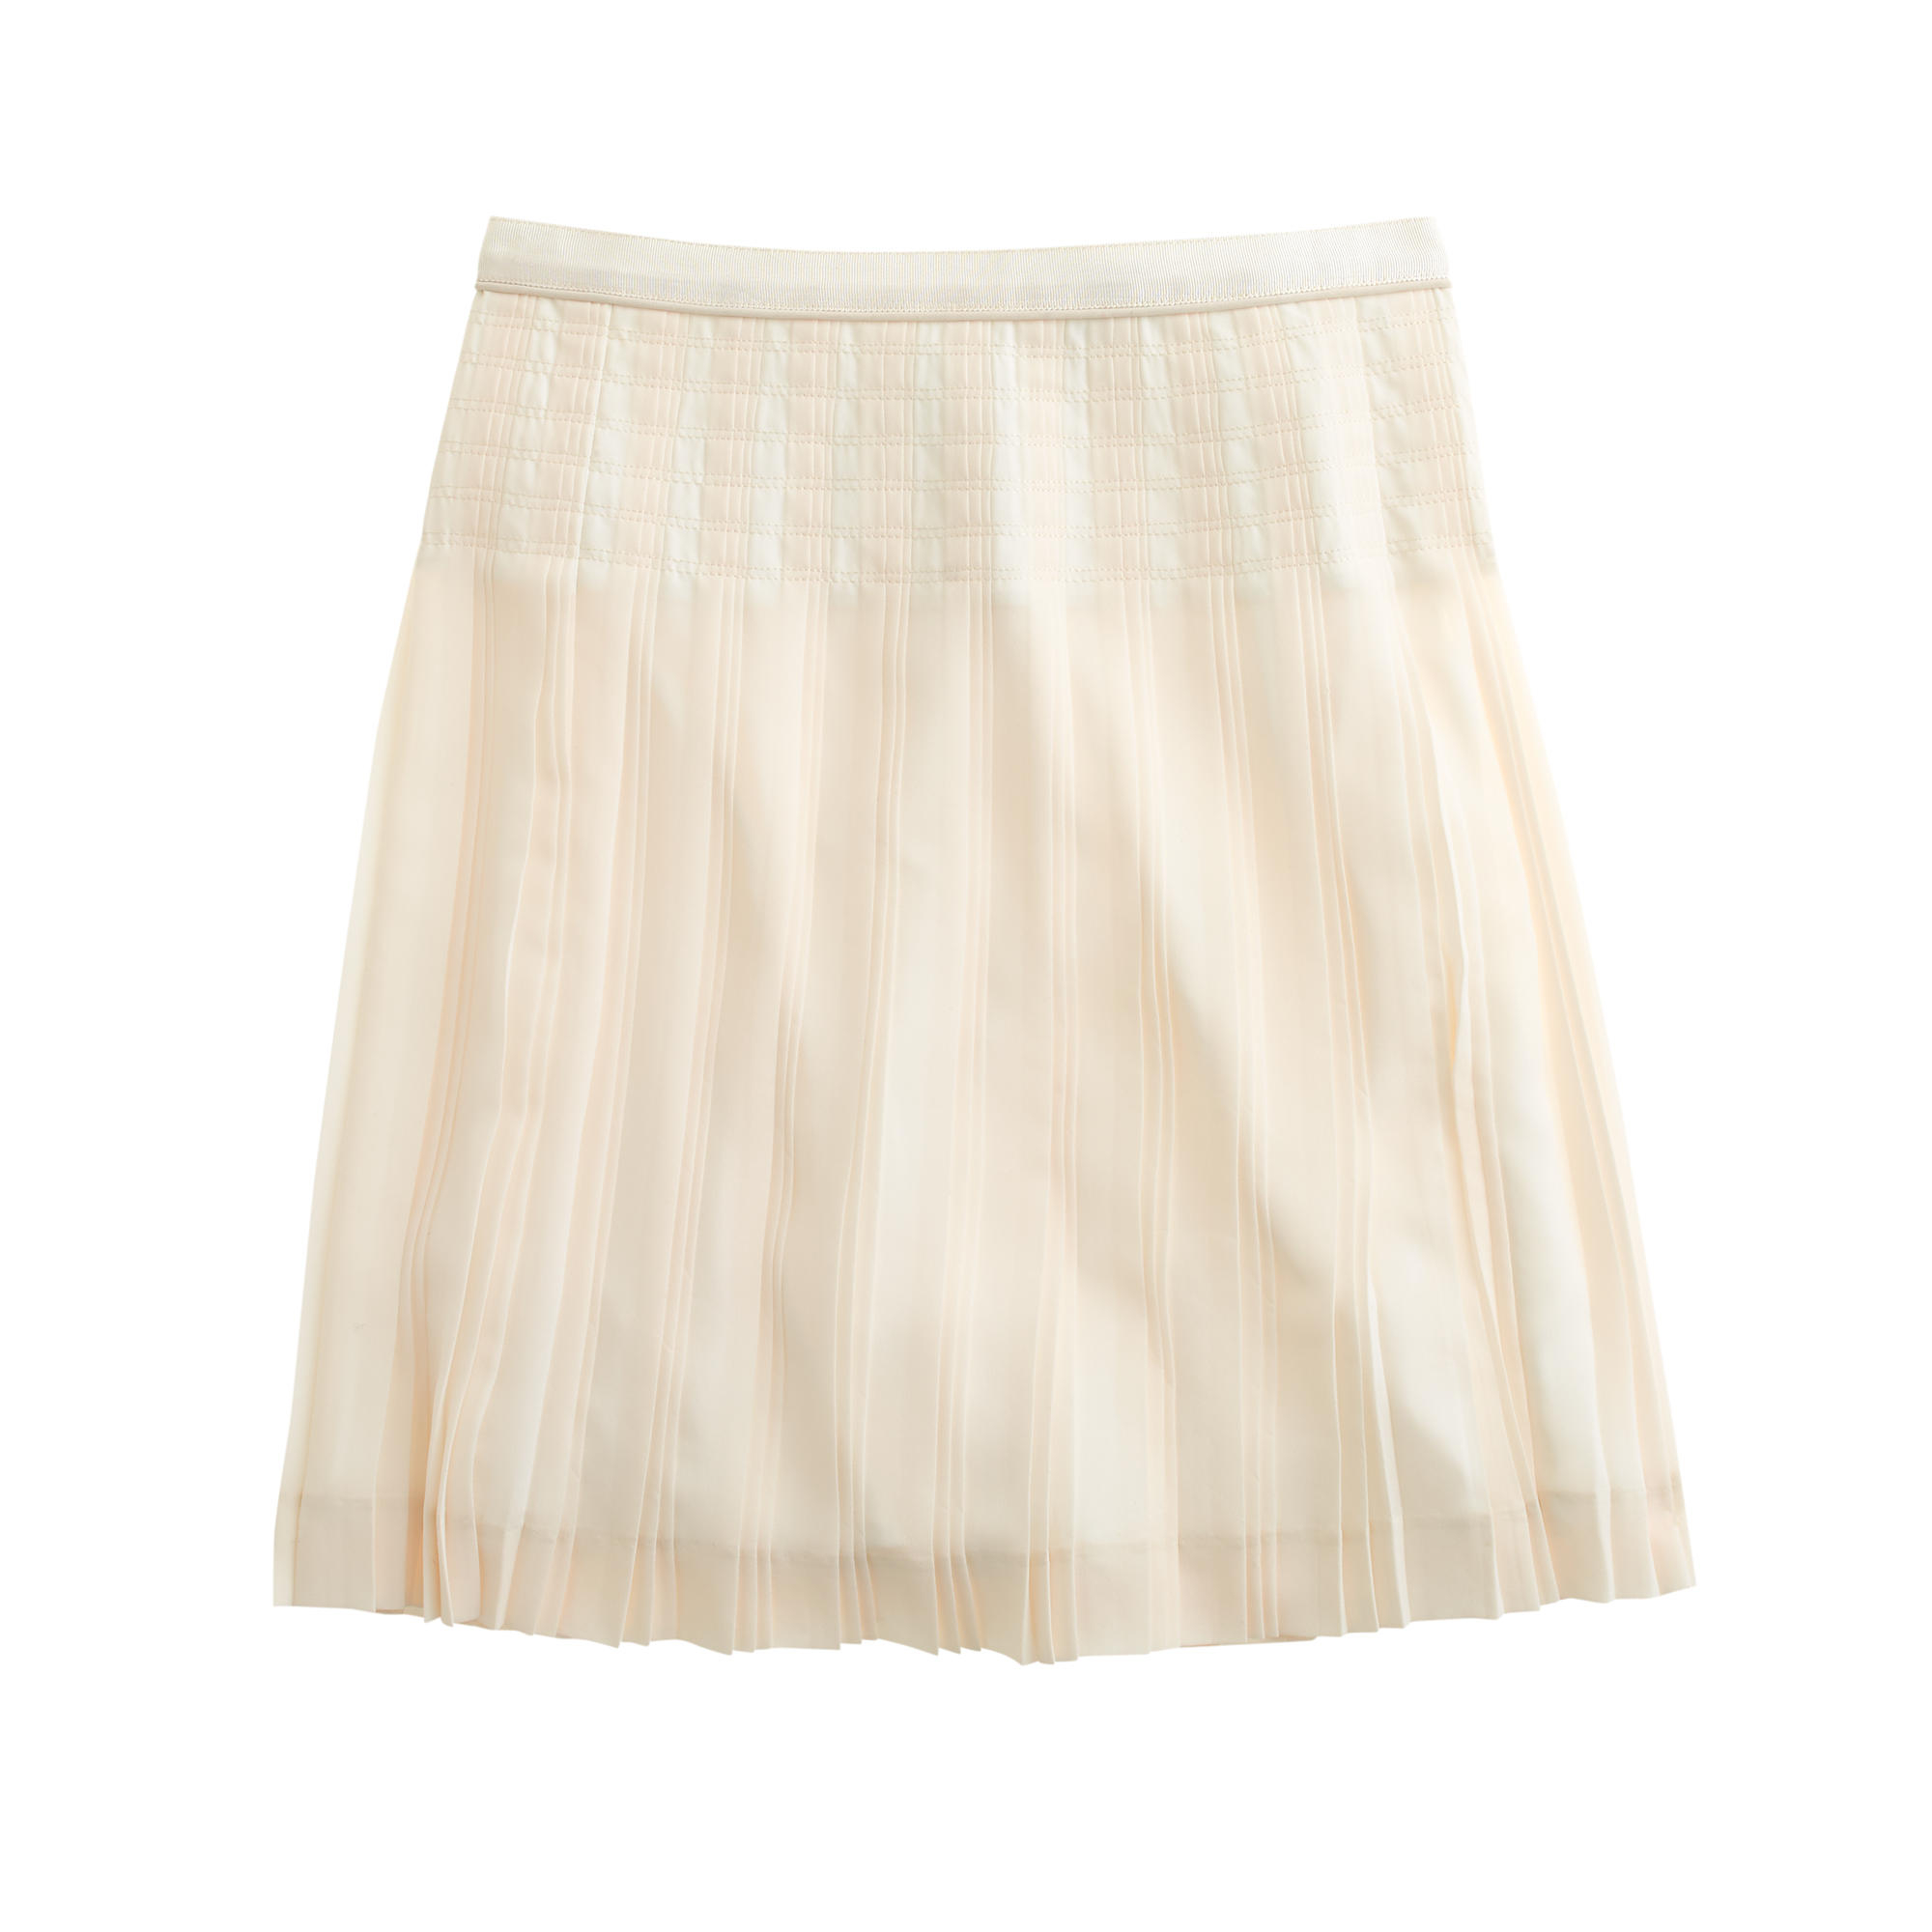 j crew stitched pleated mini skirt in white ivory